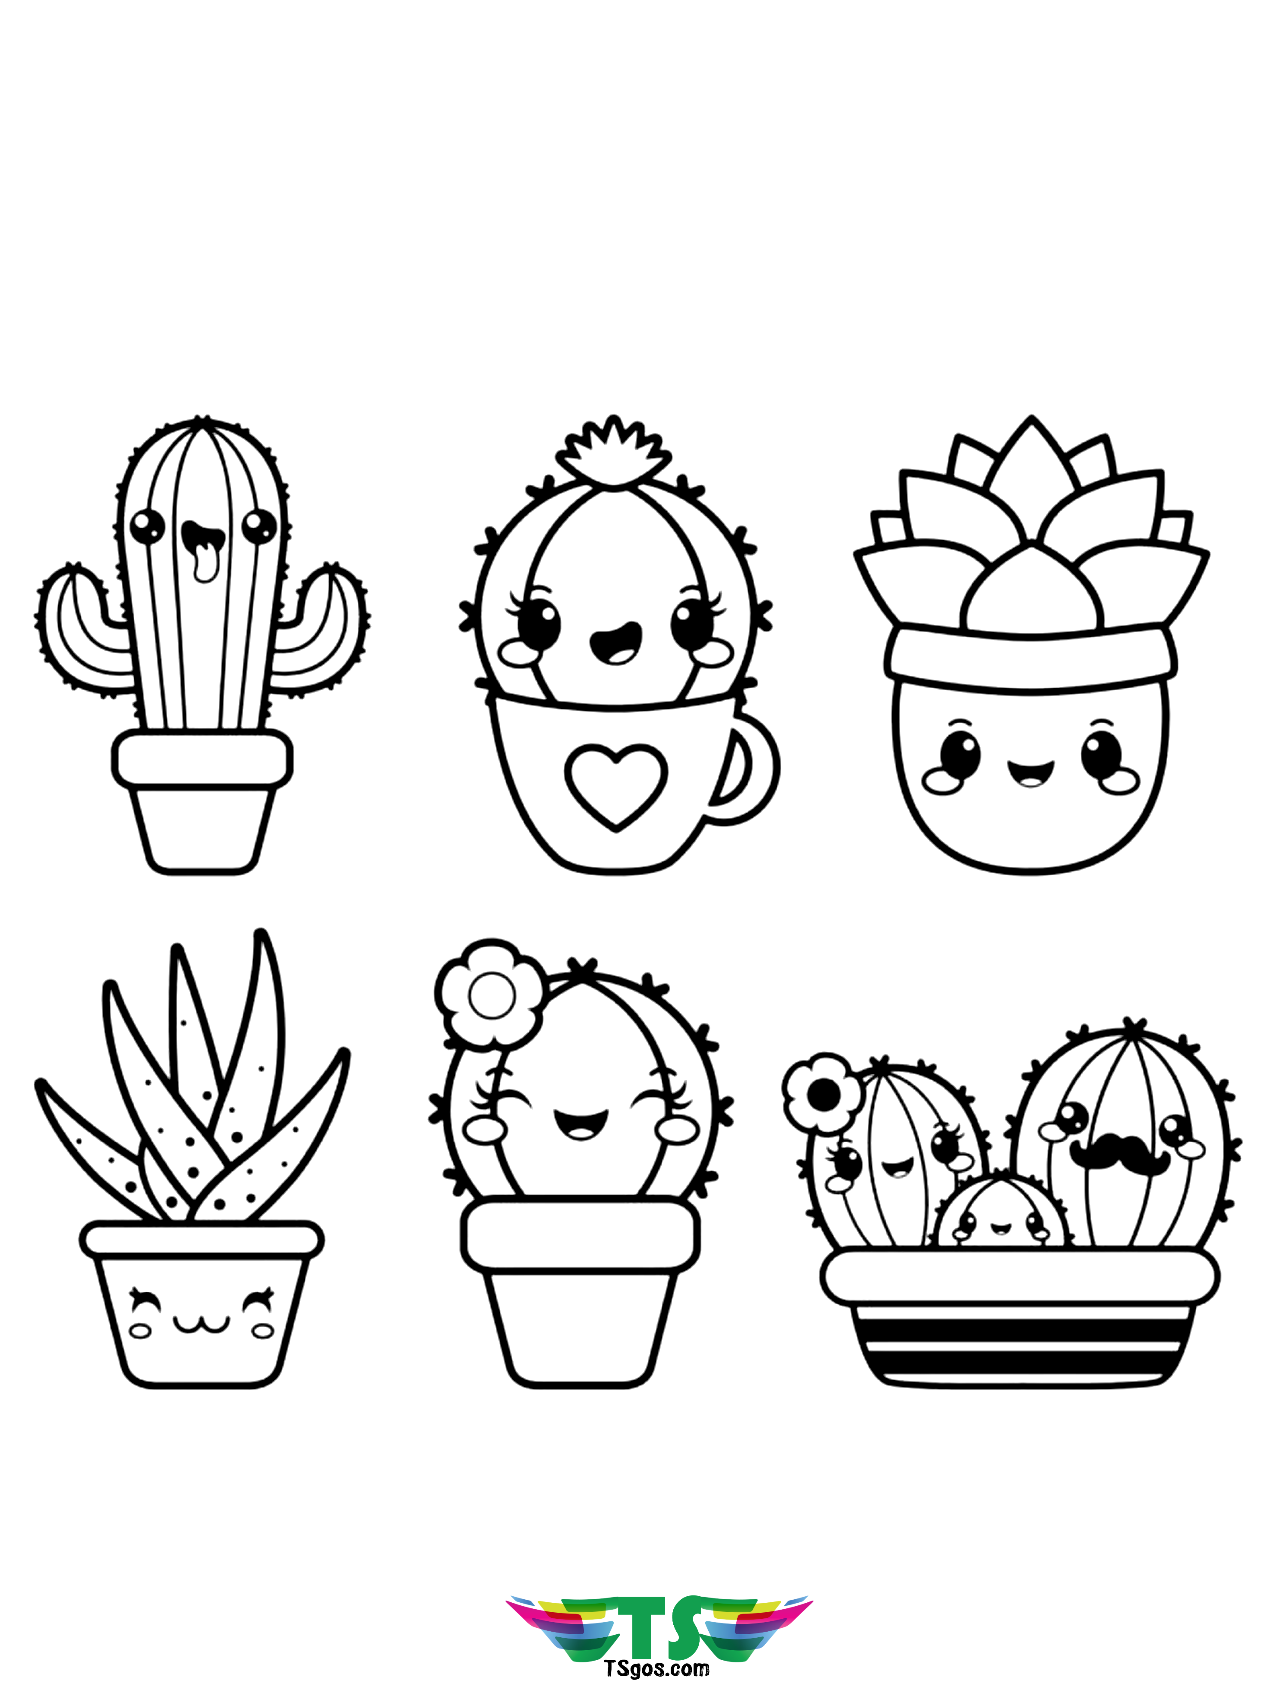 kawaii colouring pages kawaii coloring pages to download and print for free colouring pages kawaii